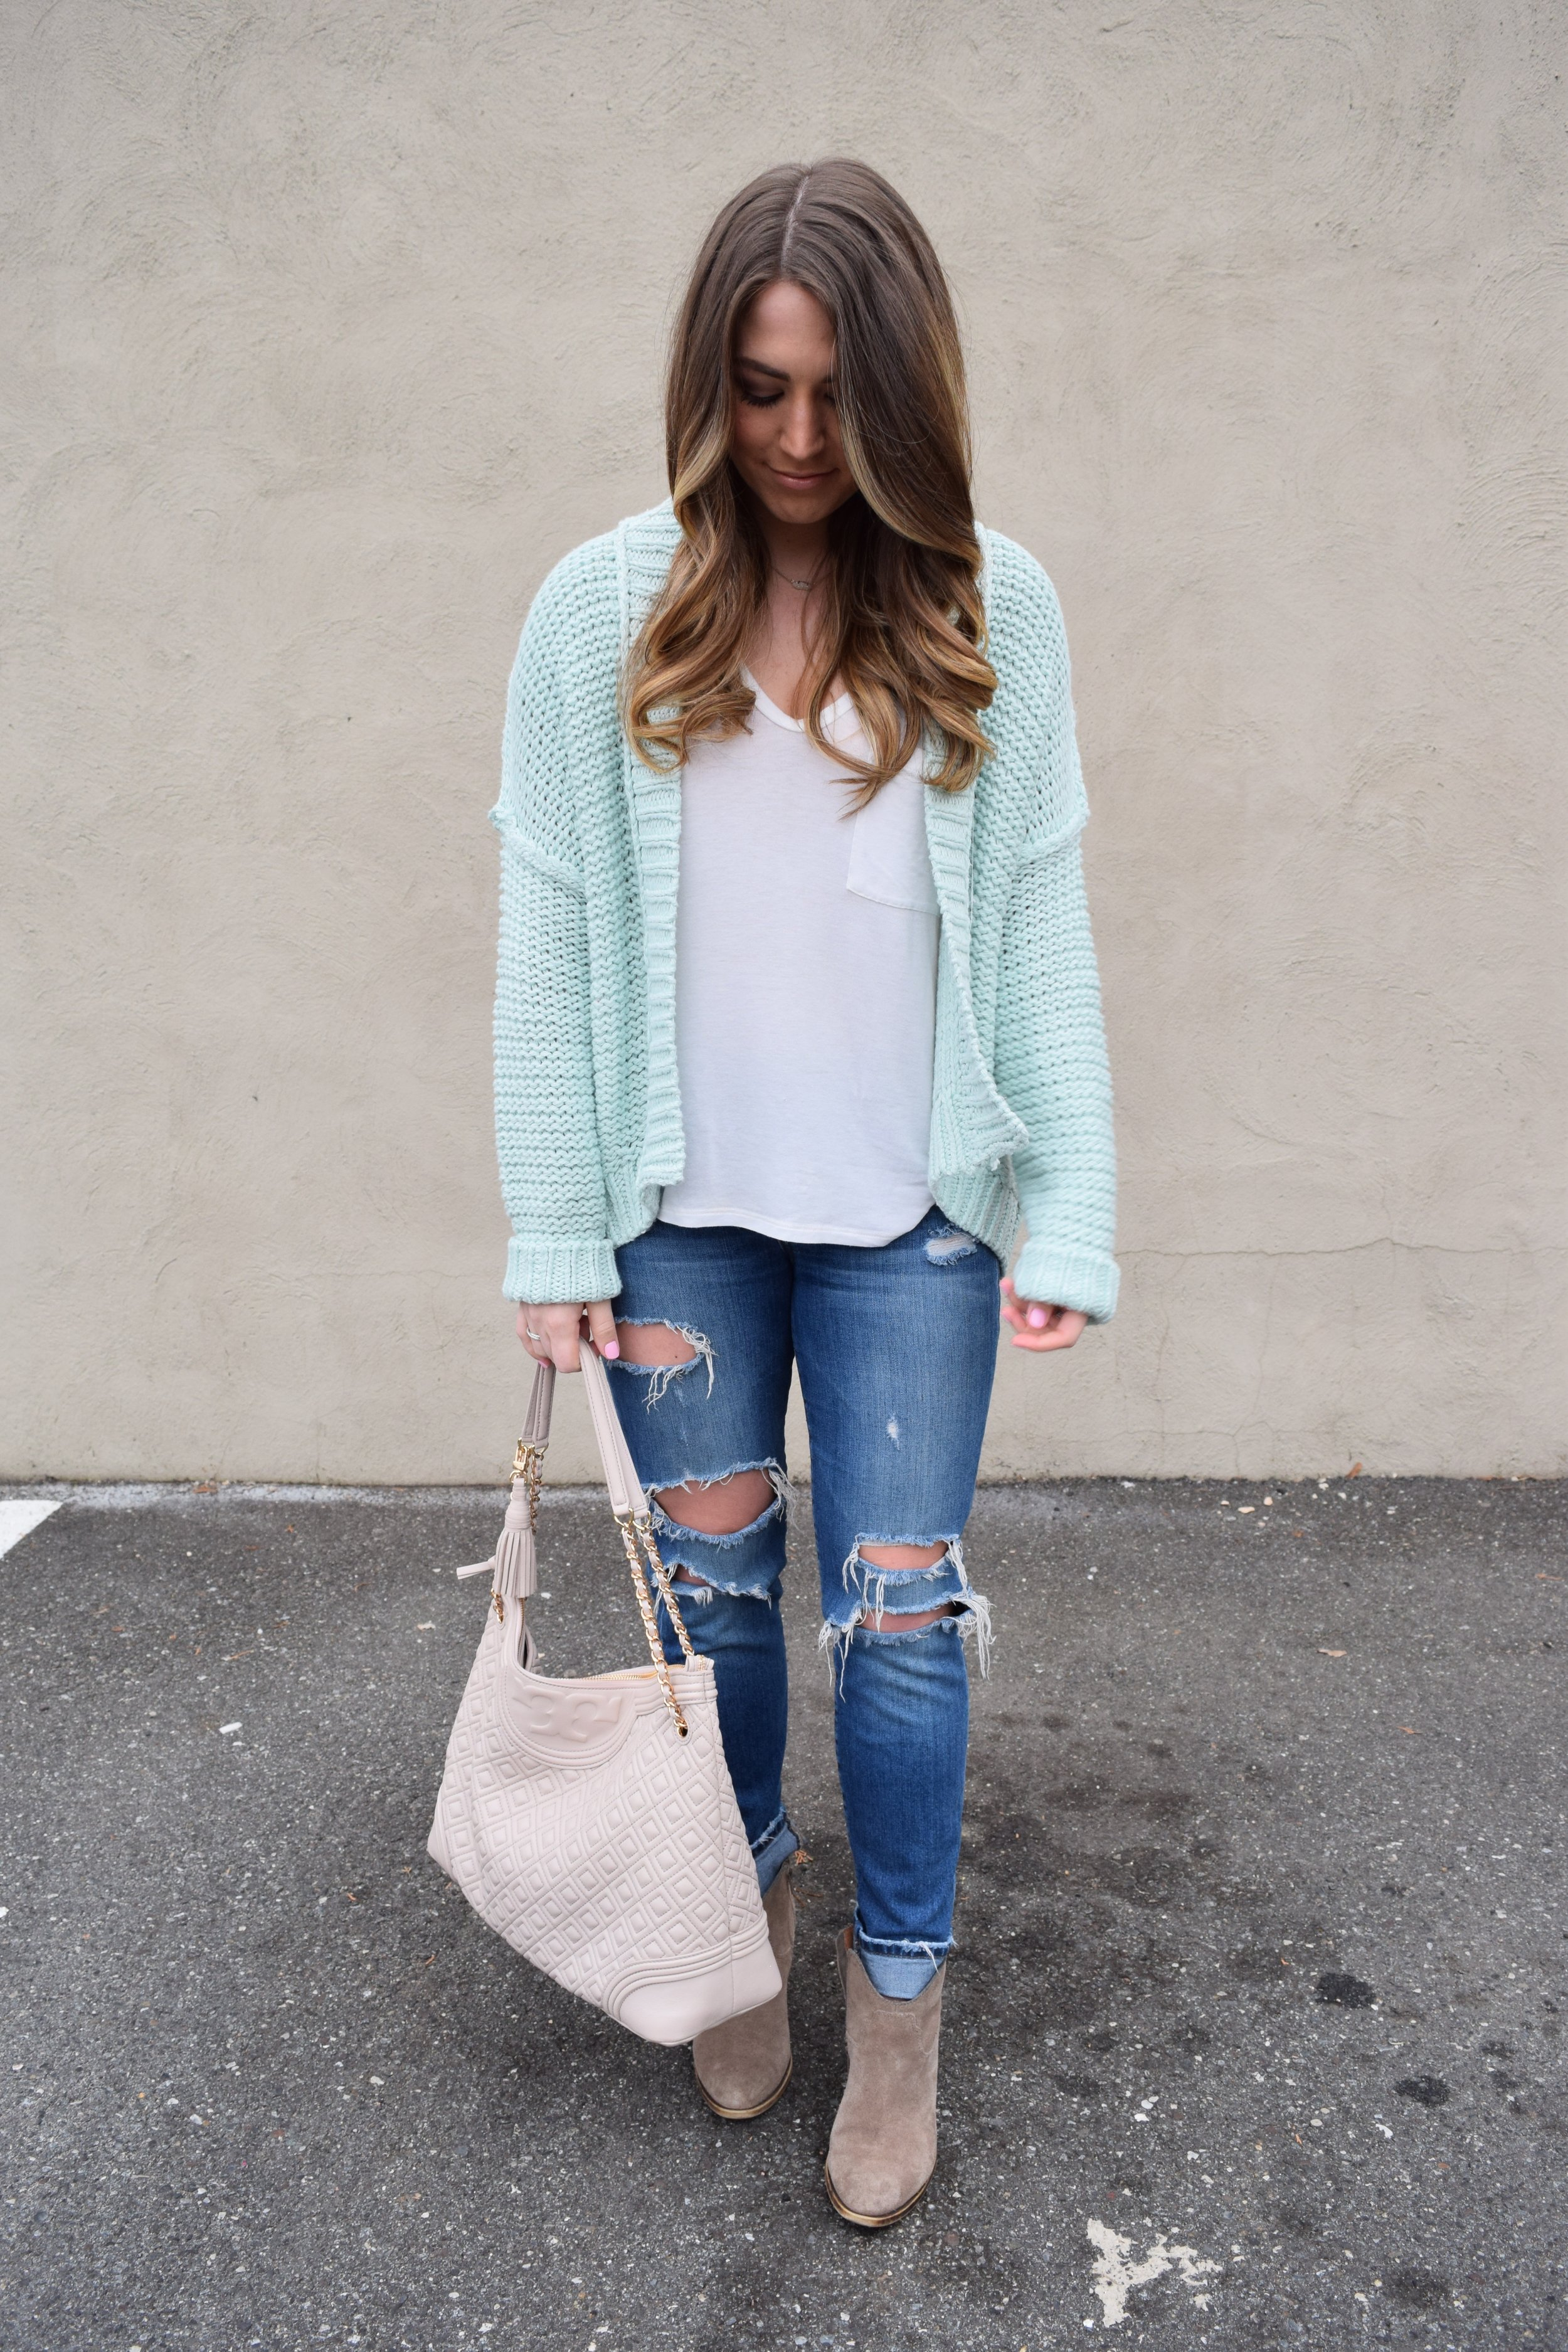 spring transition outfit, anthropologie mint cardigan, joe's jeans, lucky brand booties, tory burch bag